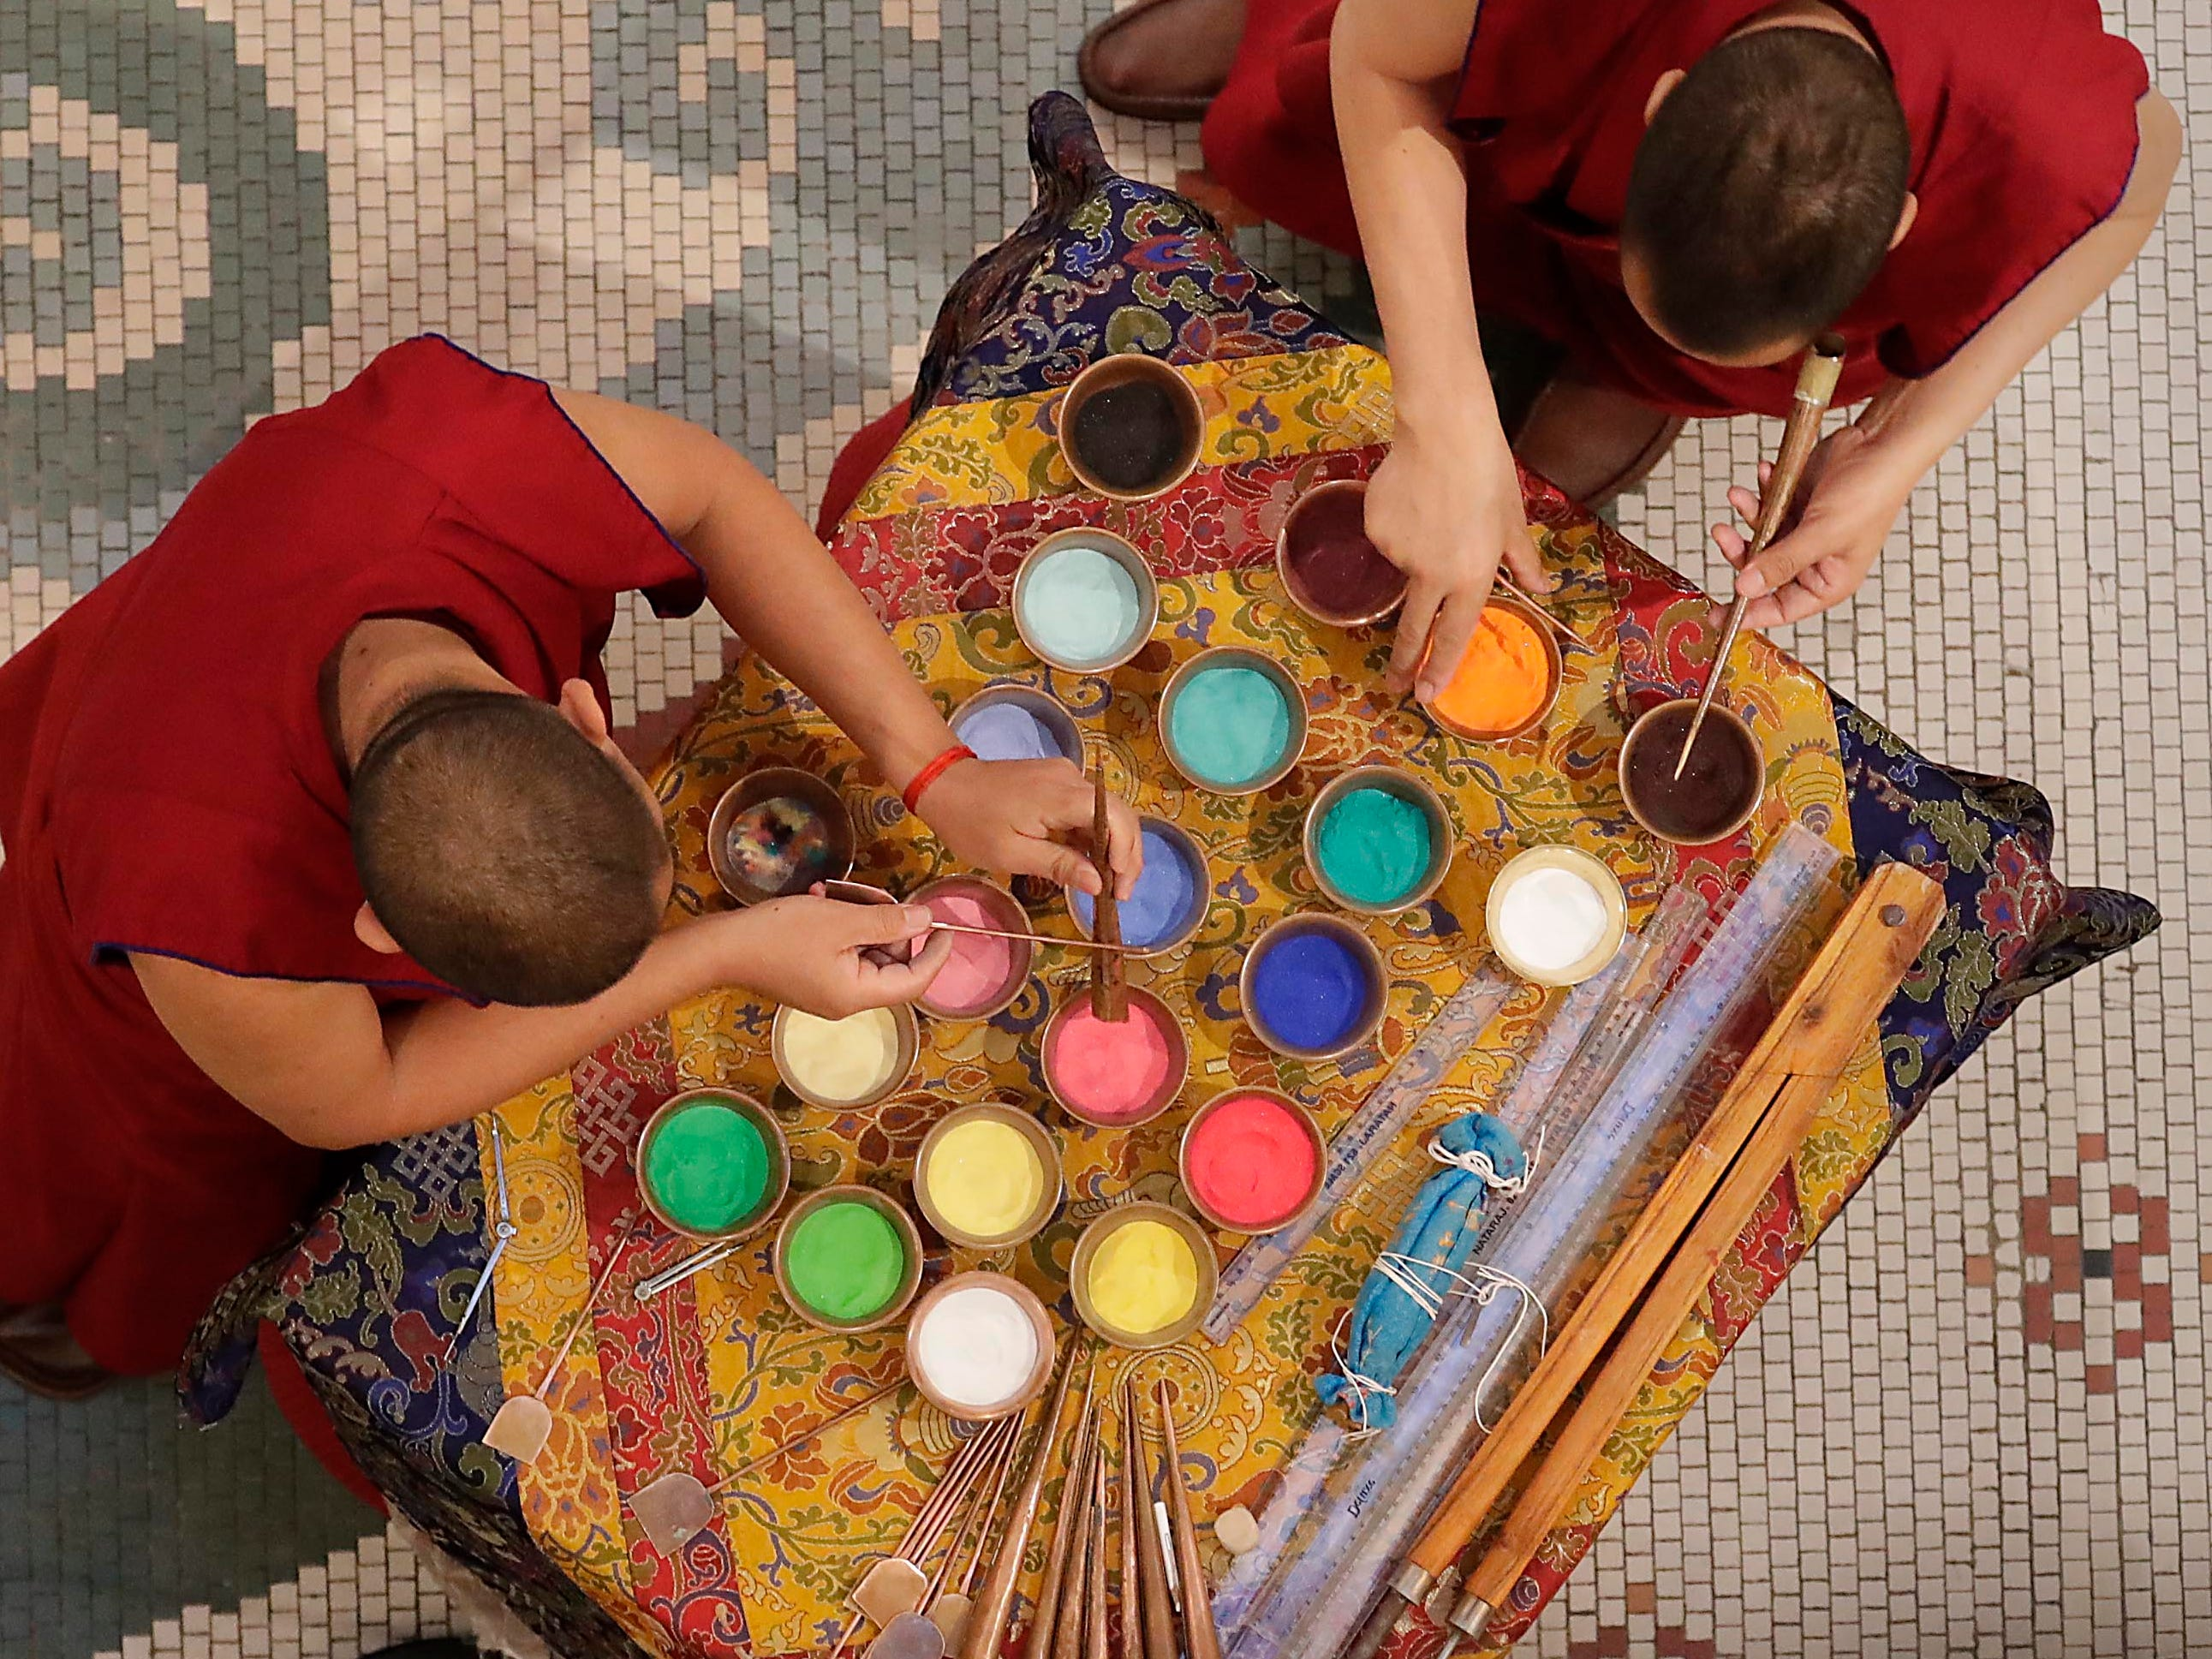 Buddhist monks from the Drepung Loseling Monastery, mix bowls of colorful sand and use narrow metal funnels to apply the sand and create a  sand mandala in the center of Milwaukee's City Hall, Thursday, April 11, 2019.